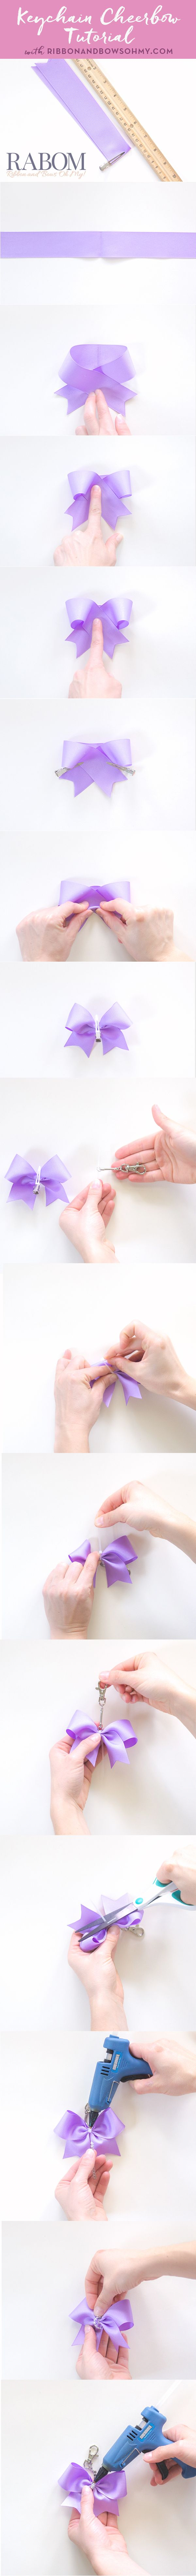 Keychain Cheerbow Tutorial  | www.ribbonandbowsohmy.com